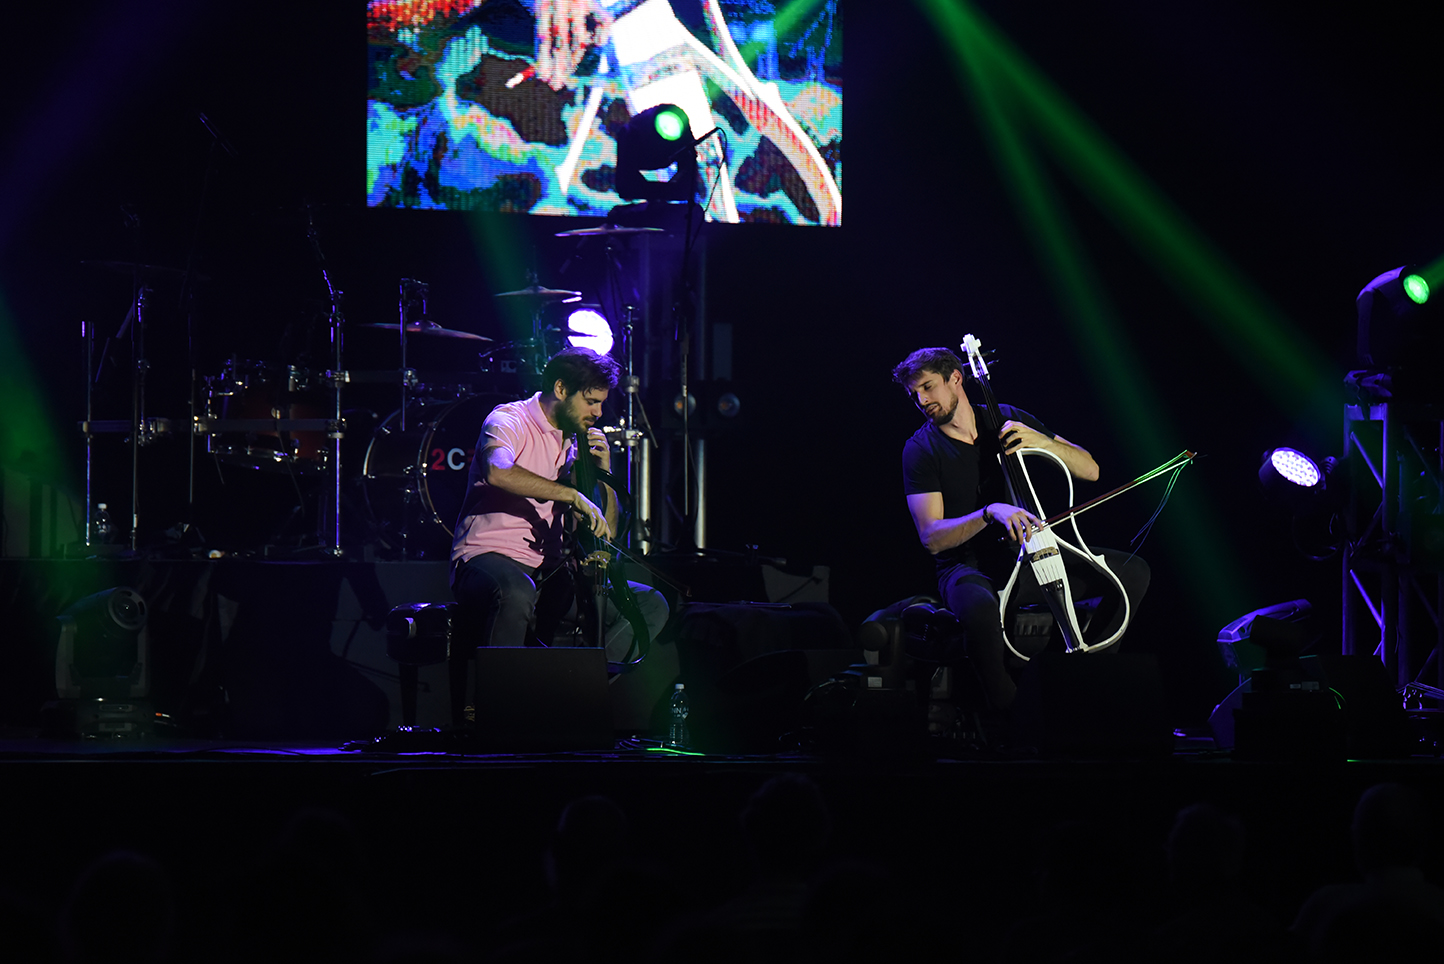 2Cellos strikes a chord with the crowd — The Daily Campus